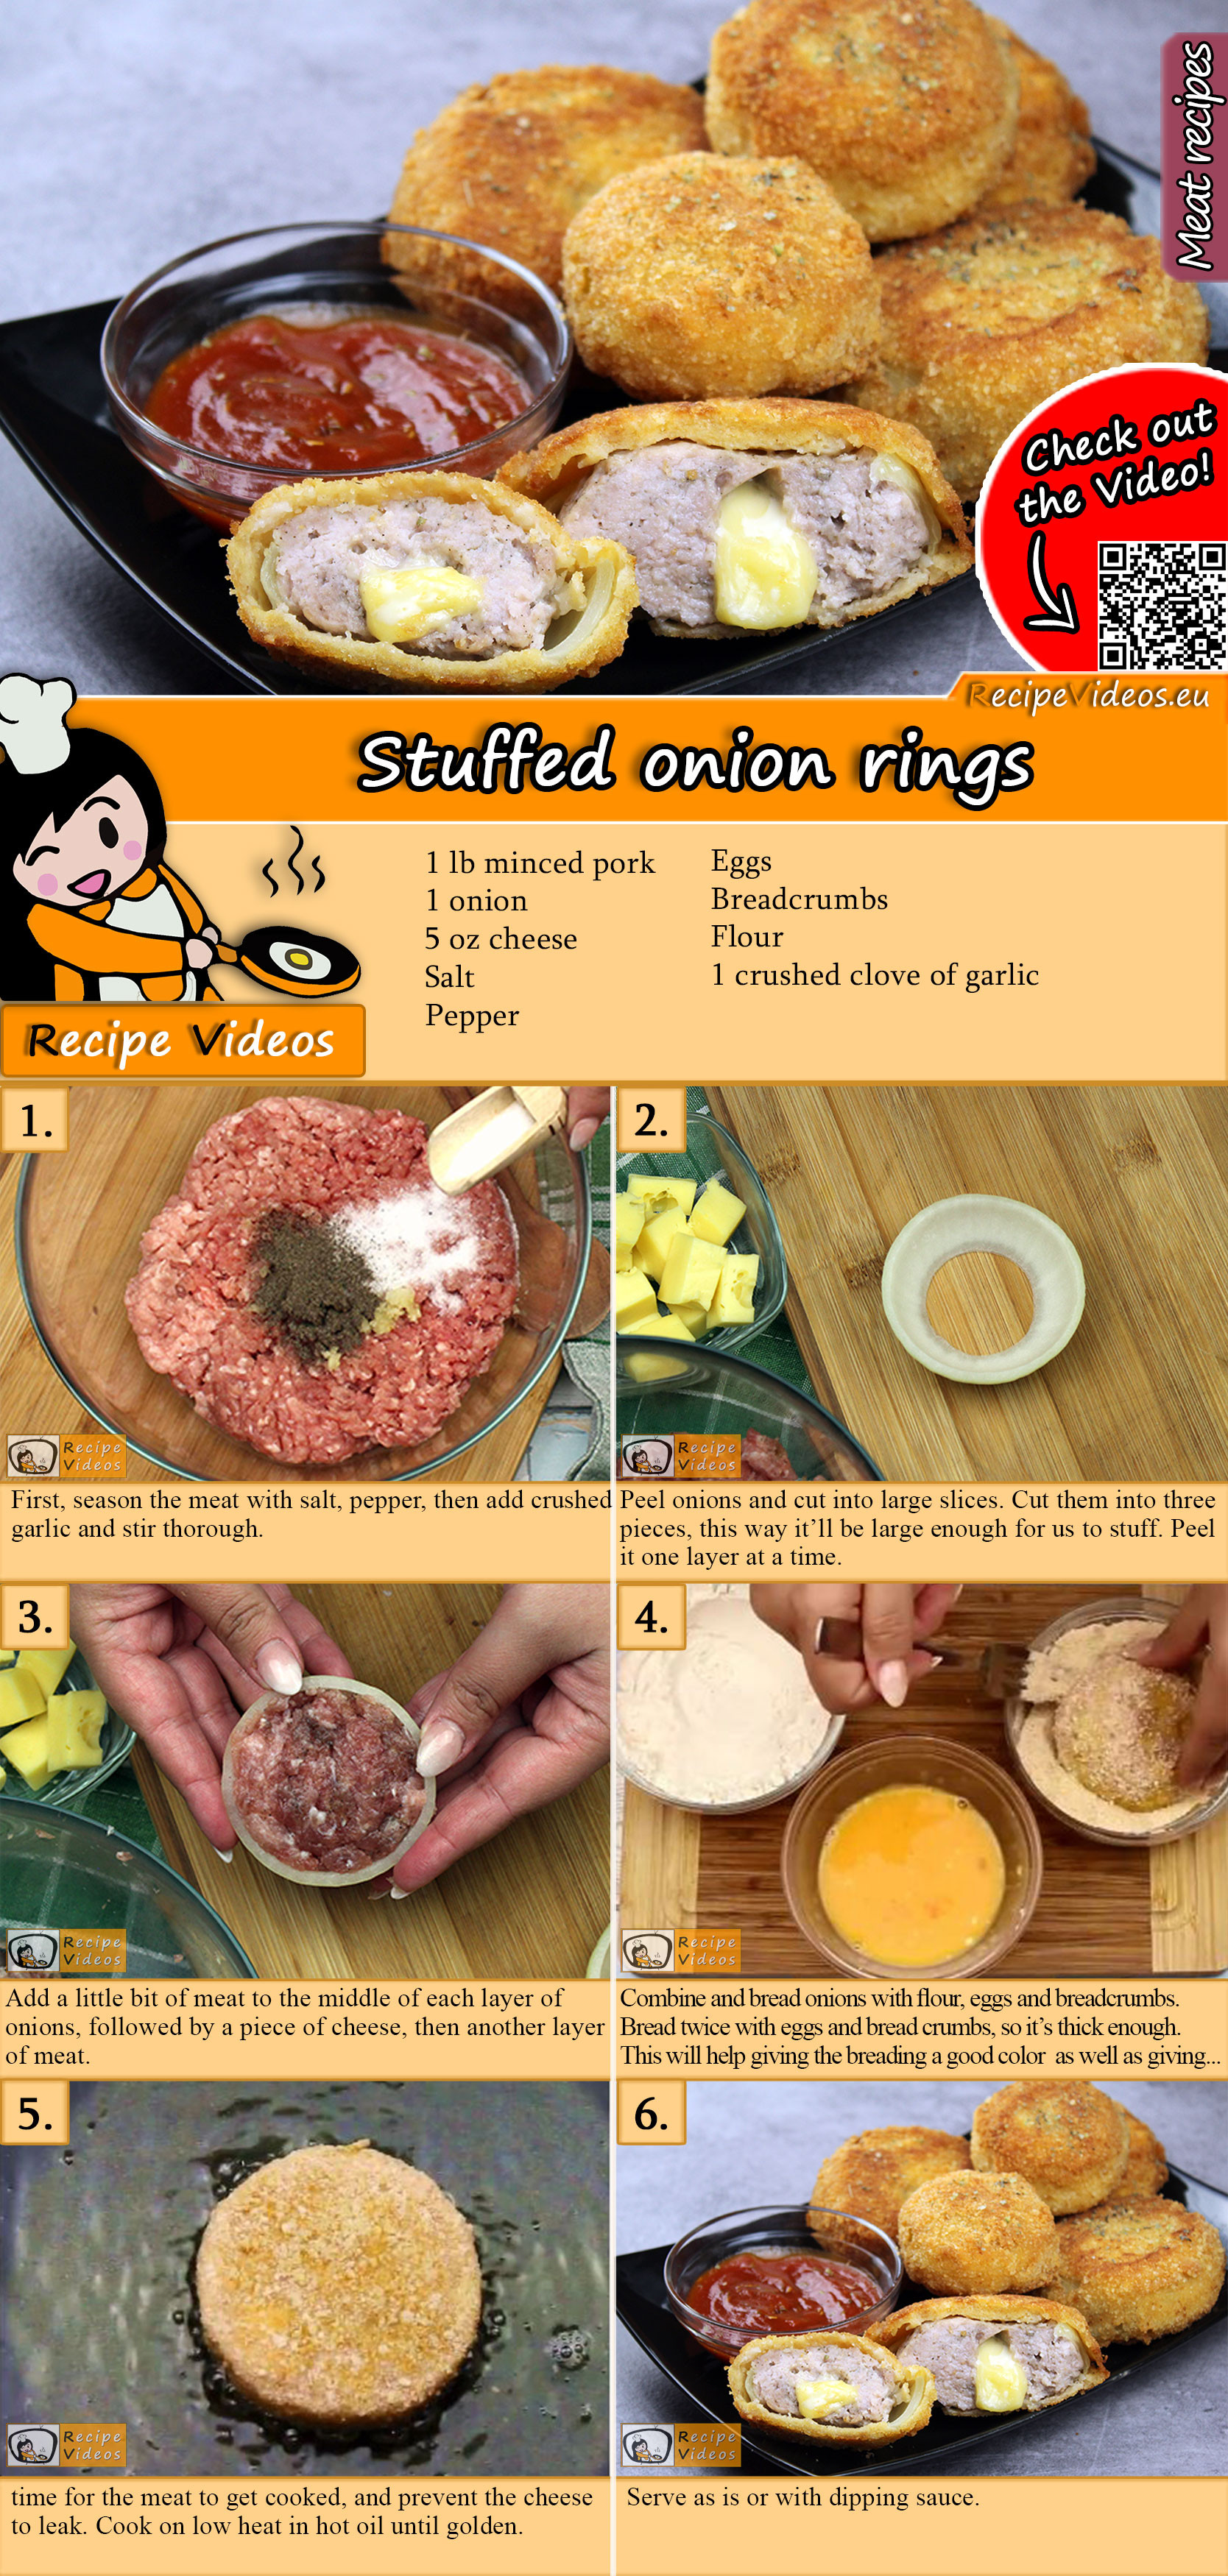 Stuffed onion rings recipe with video